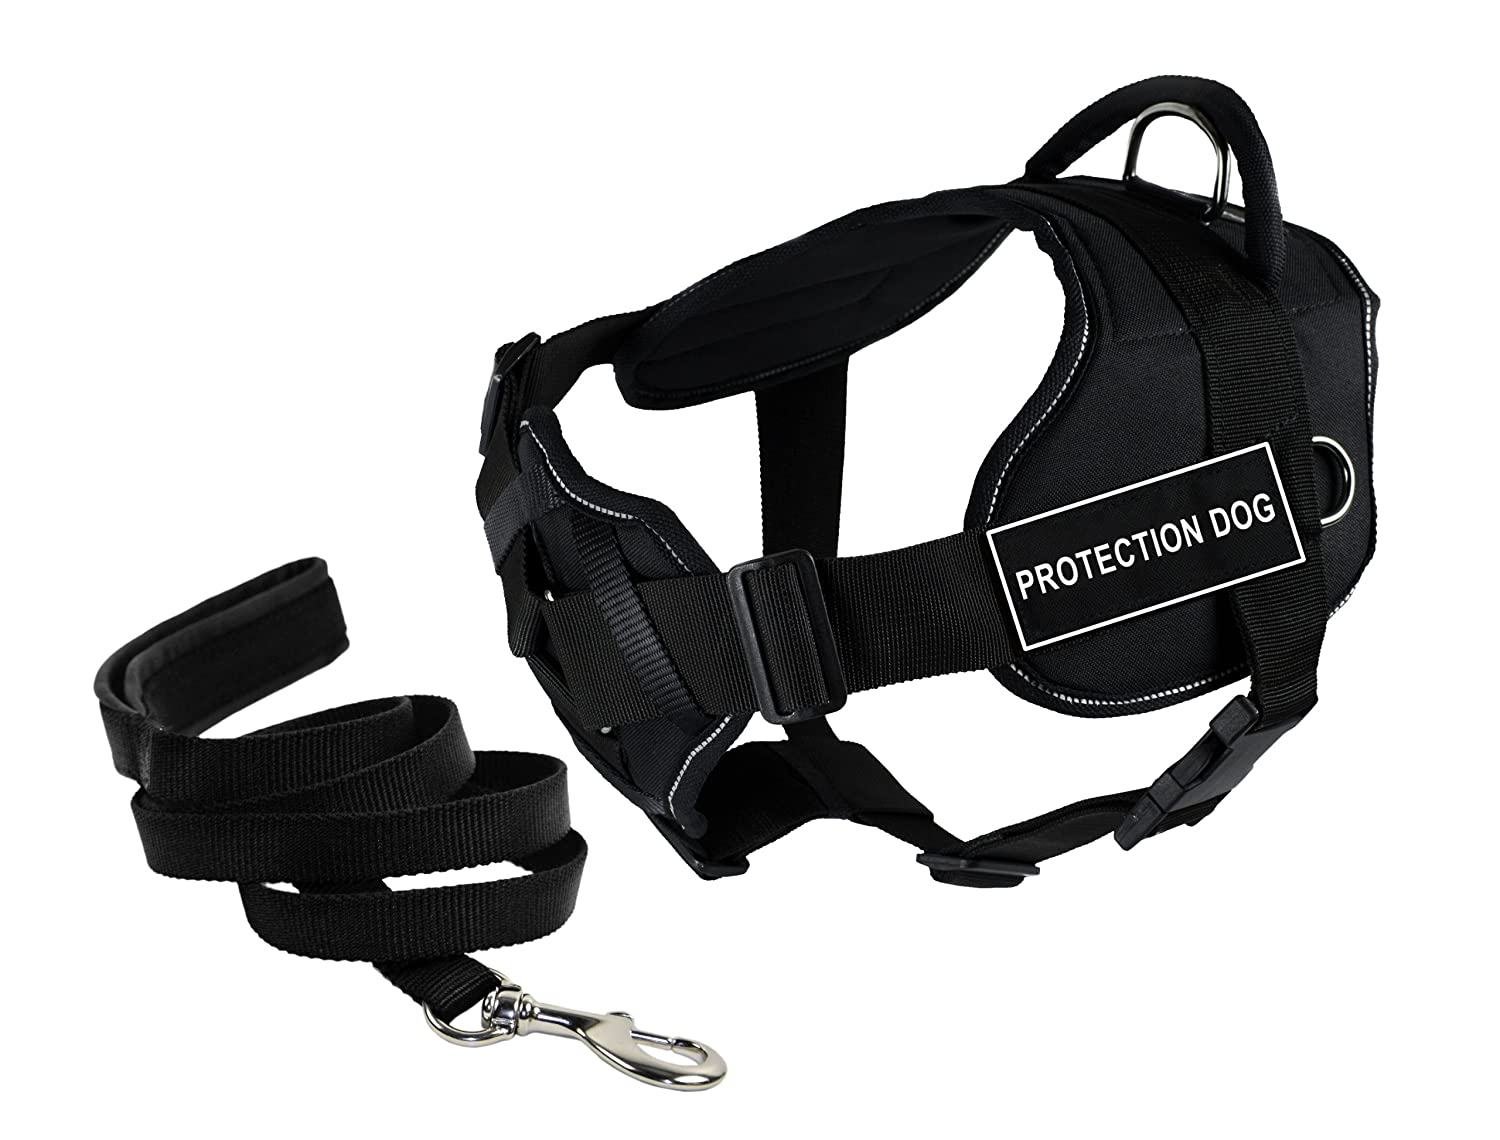 Dean & Tyler Bundle DT Fun  32 to 42-Inch Black Predection Dog Reflective Harness with Chest Support, Padded Puppy Leash and 6-Feet Stainless Steel Snap